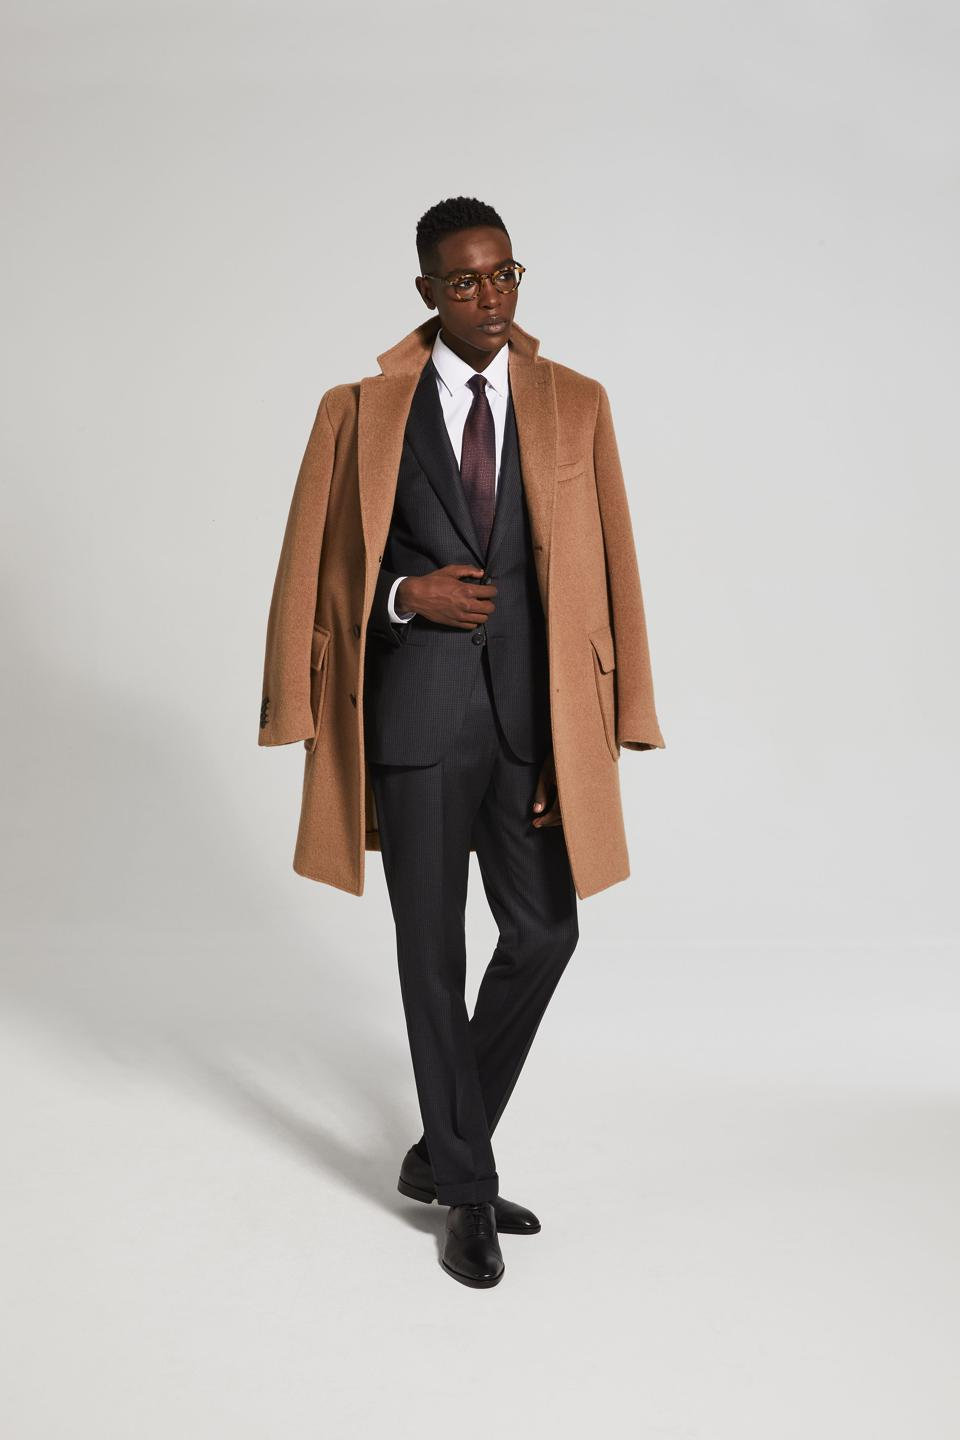 Anthracite And Burgundy 'Impeccabile' Wool Suit, made in Italy